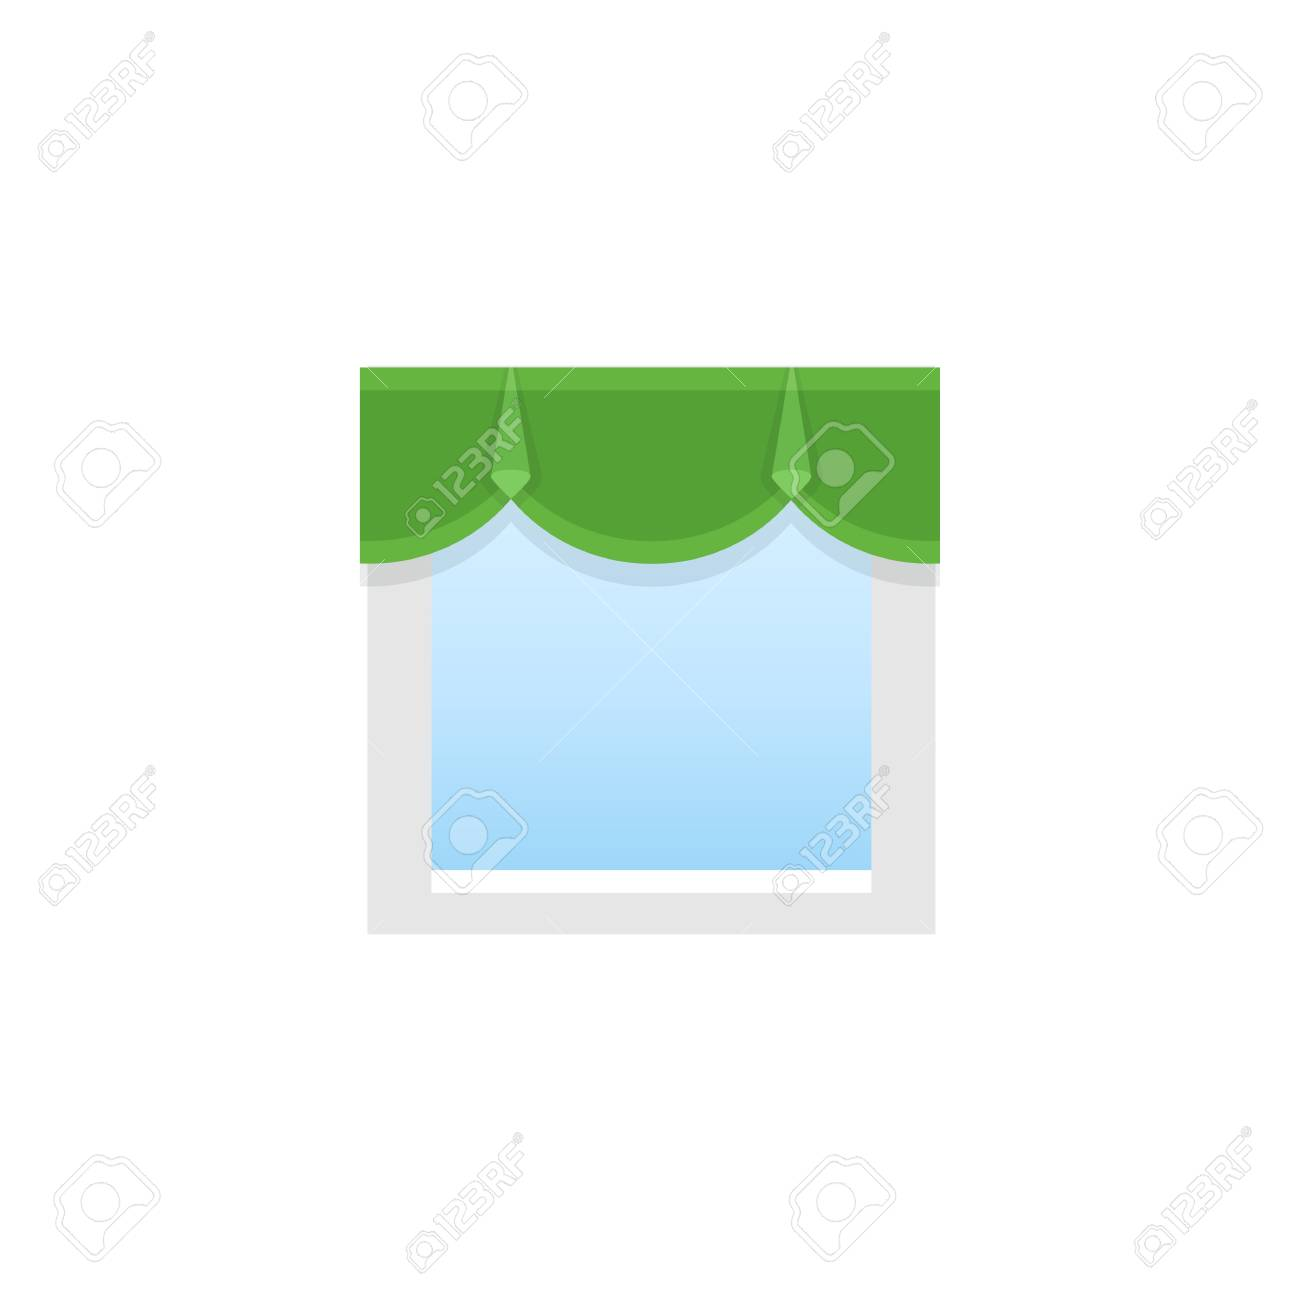 Green fabric pelmet. Vector illustration. Flat icon of scalloped valance. Element of home & office top window decoration. Front view. - 106229339